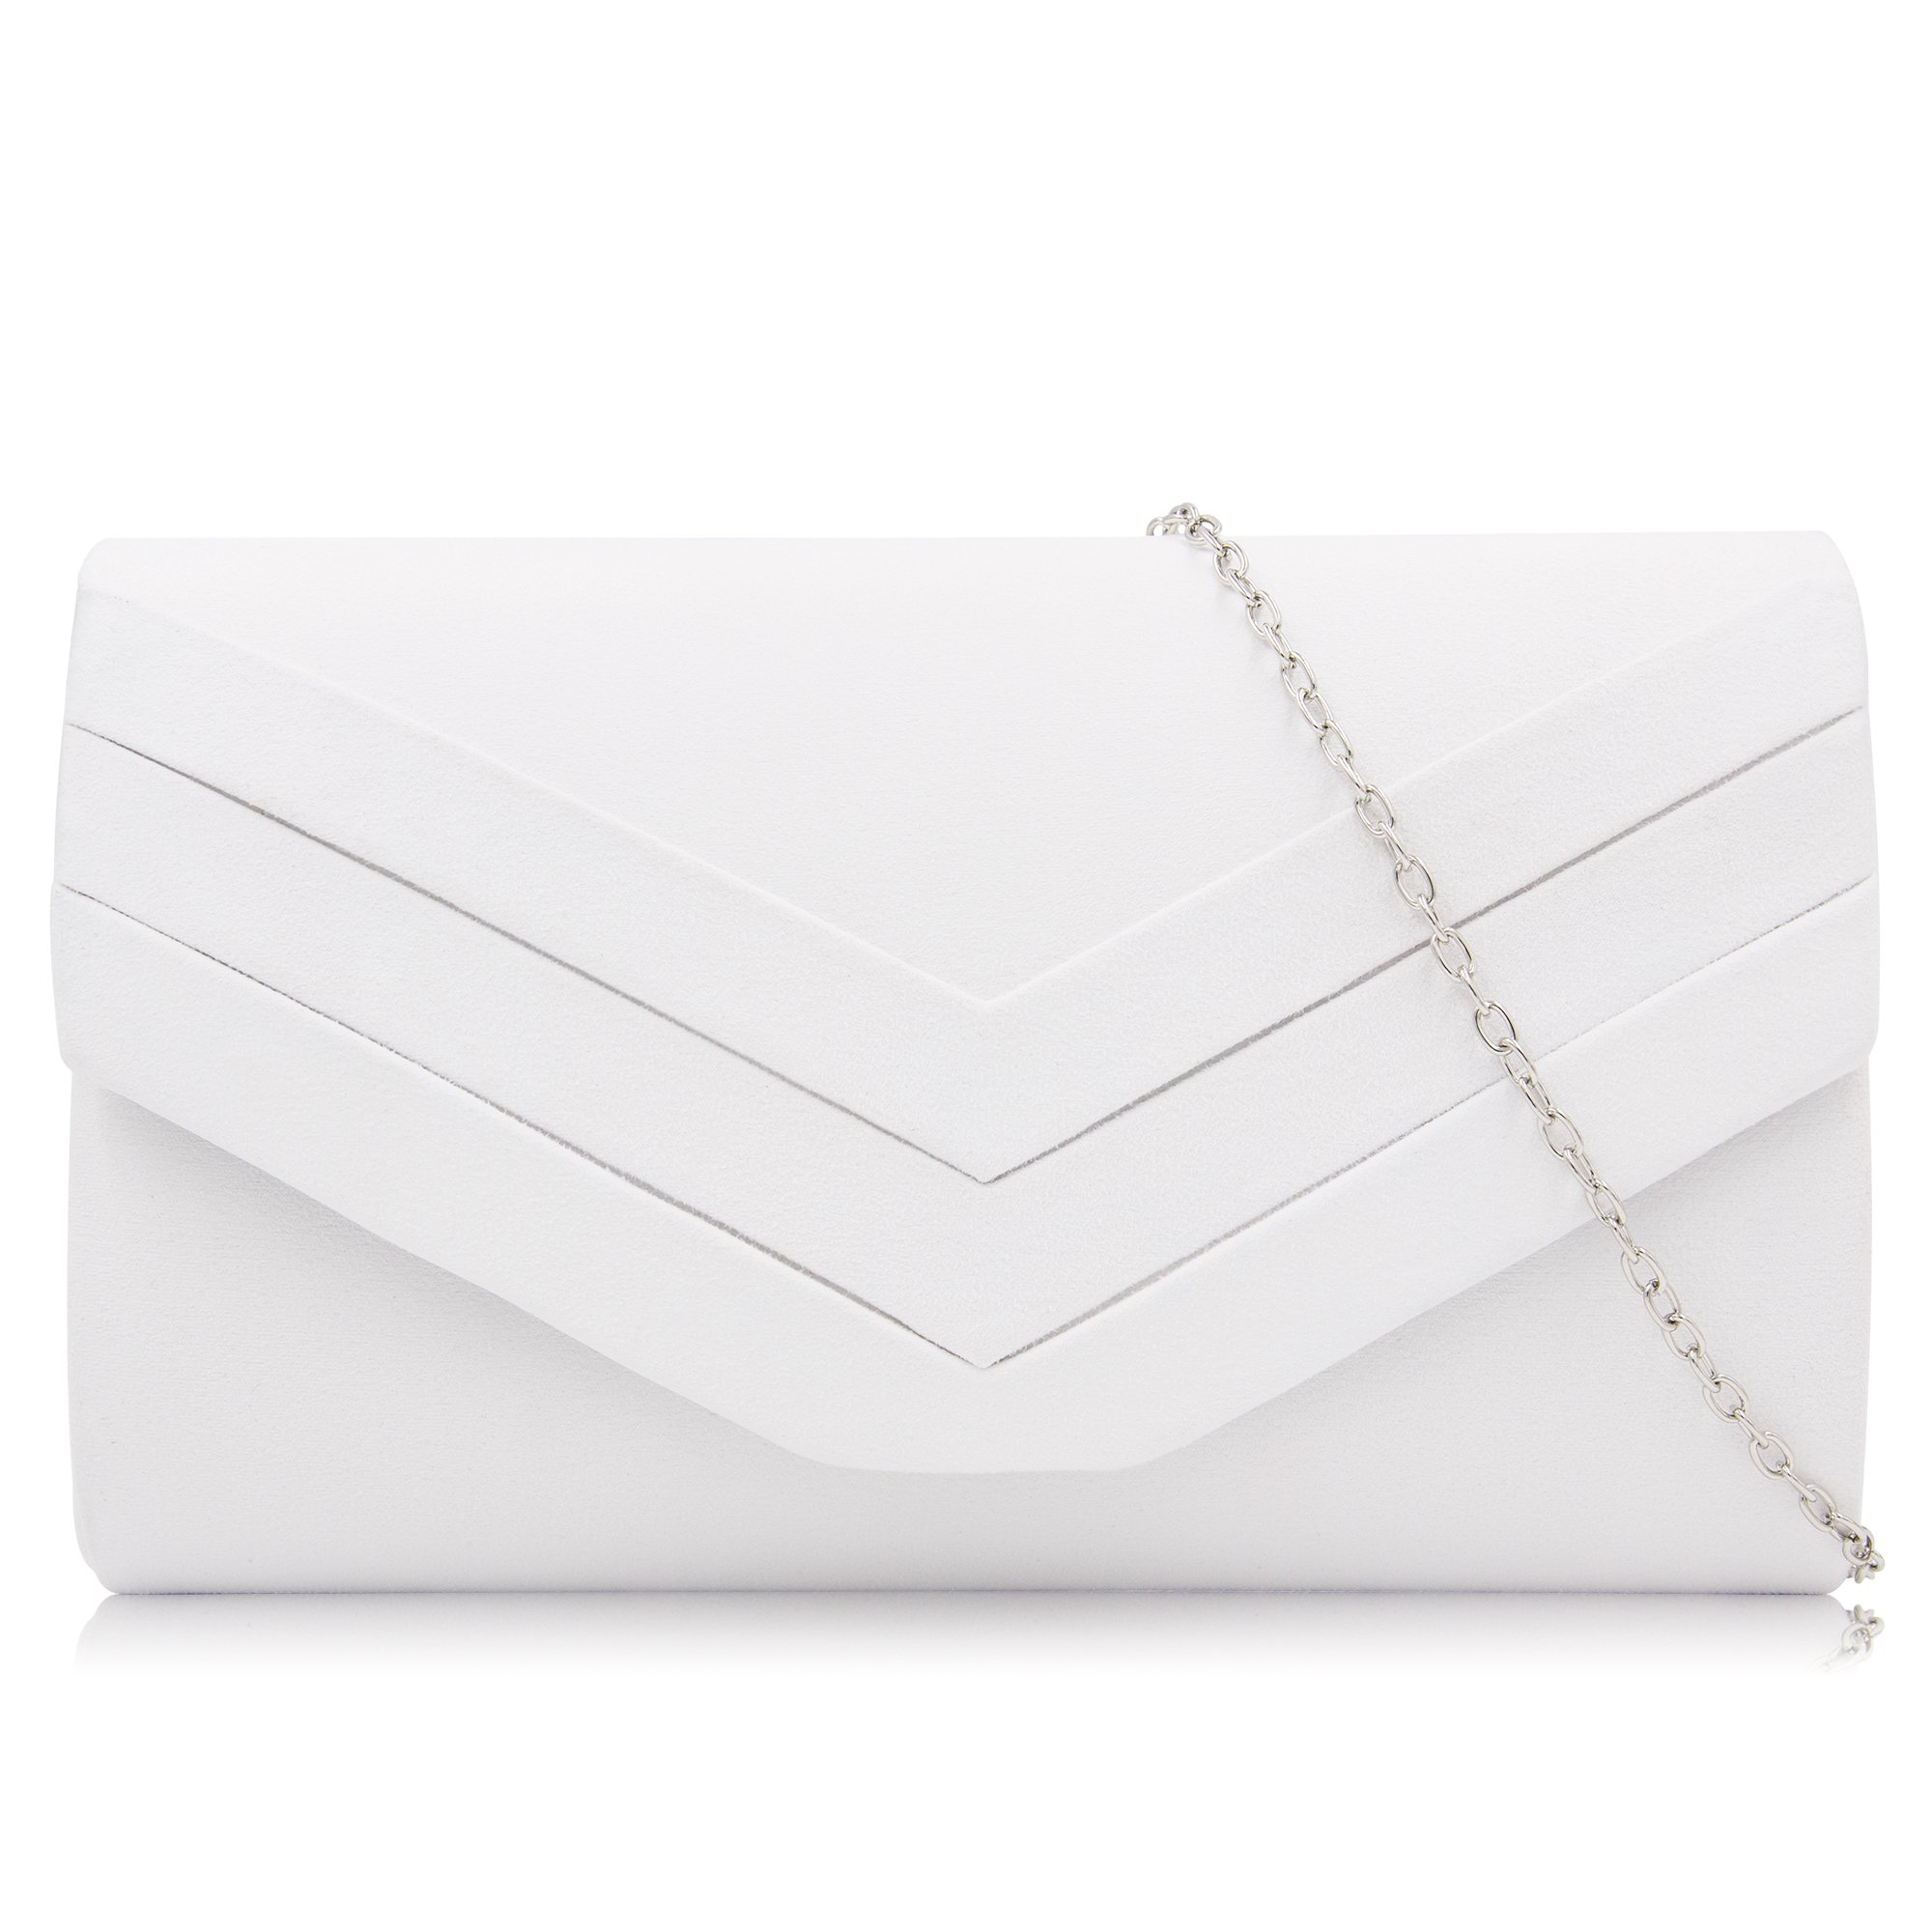 Milisente Women Clutches Velvet Evenlope Evening Bag Classic Clutch Purse (White) by Milisente